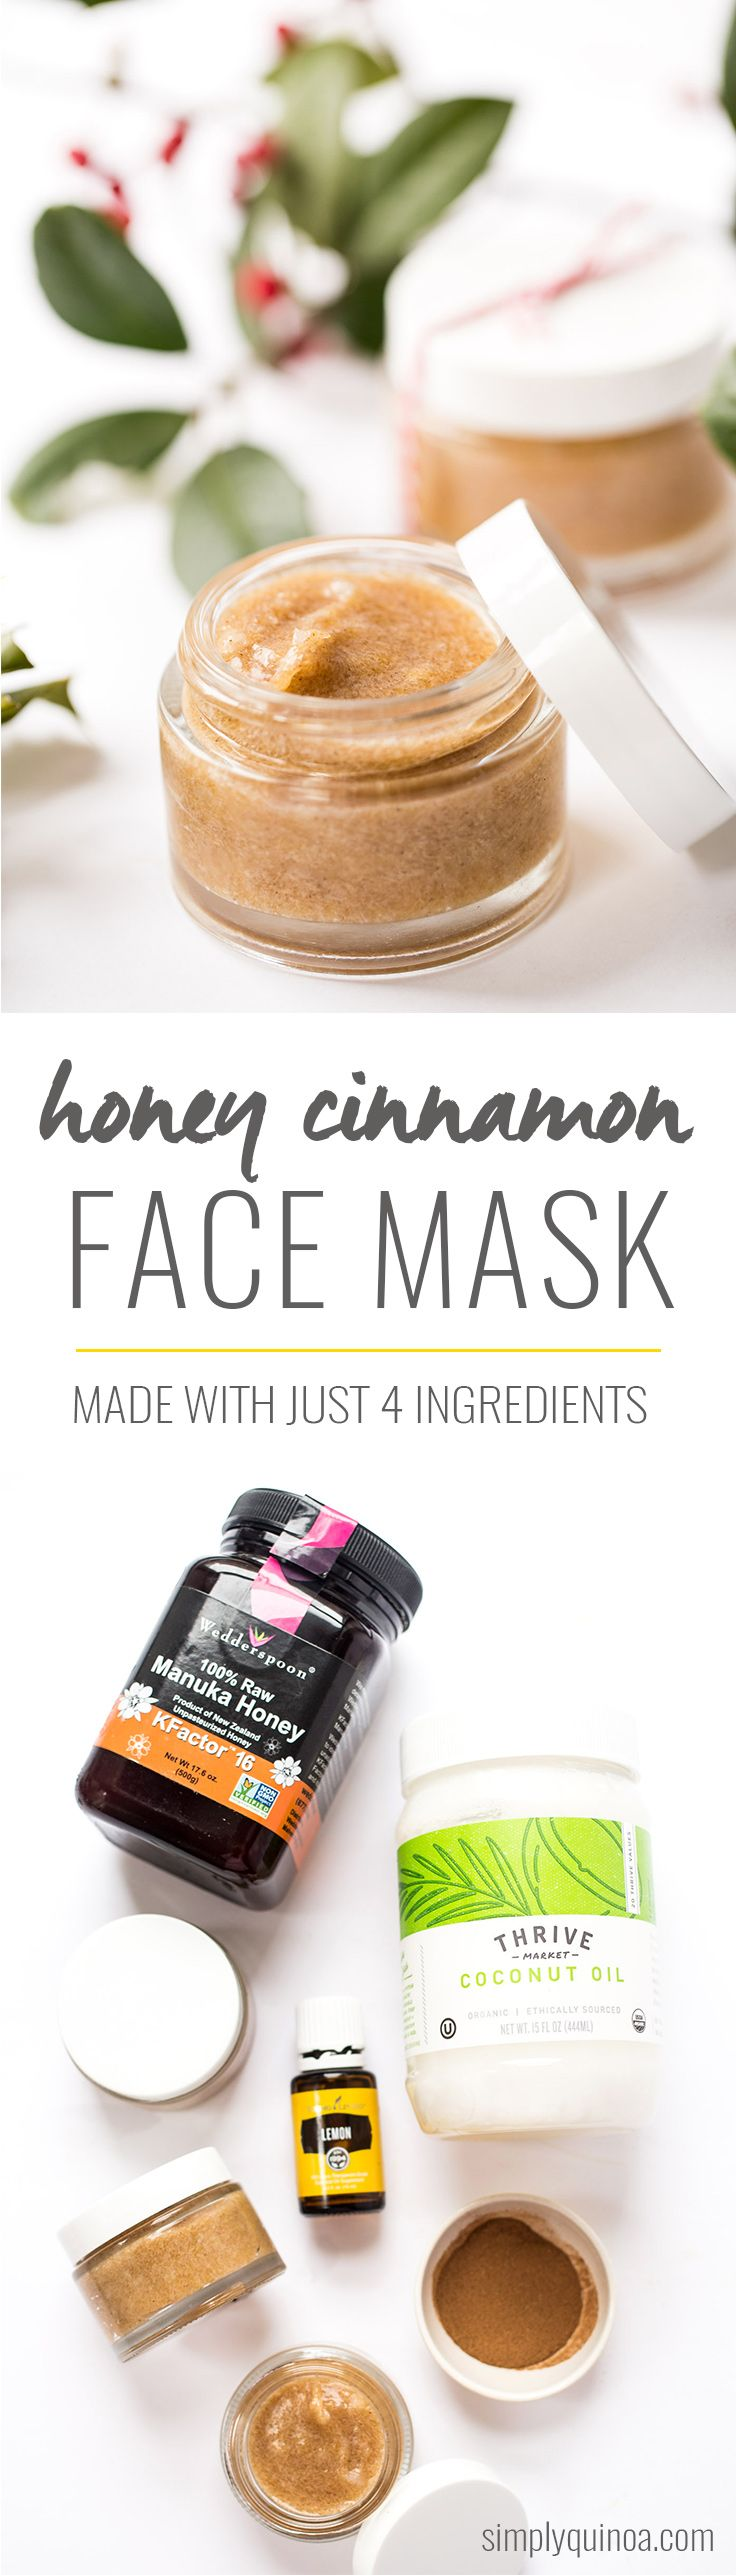 Photo of DIY Honey Cinnamon Face Mask – Simply Quinoa